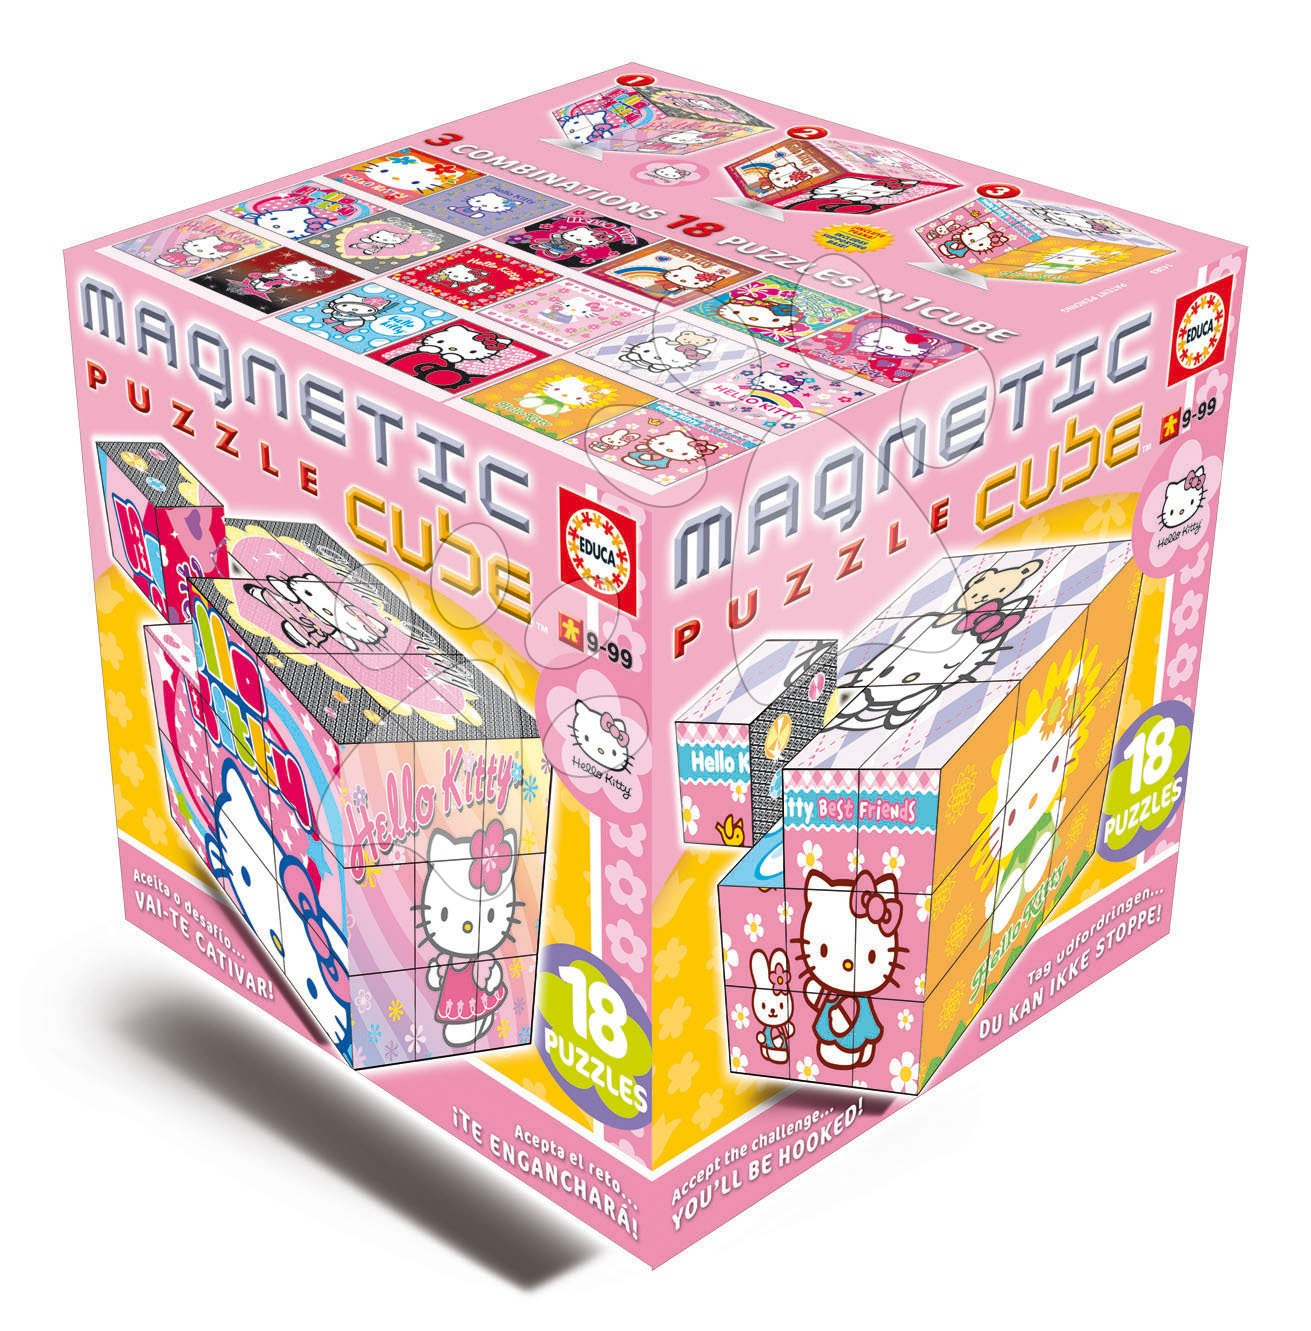 Staré položky - Puzzle Magnetic Cube, Hello Kitty Educa od 9 let